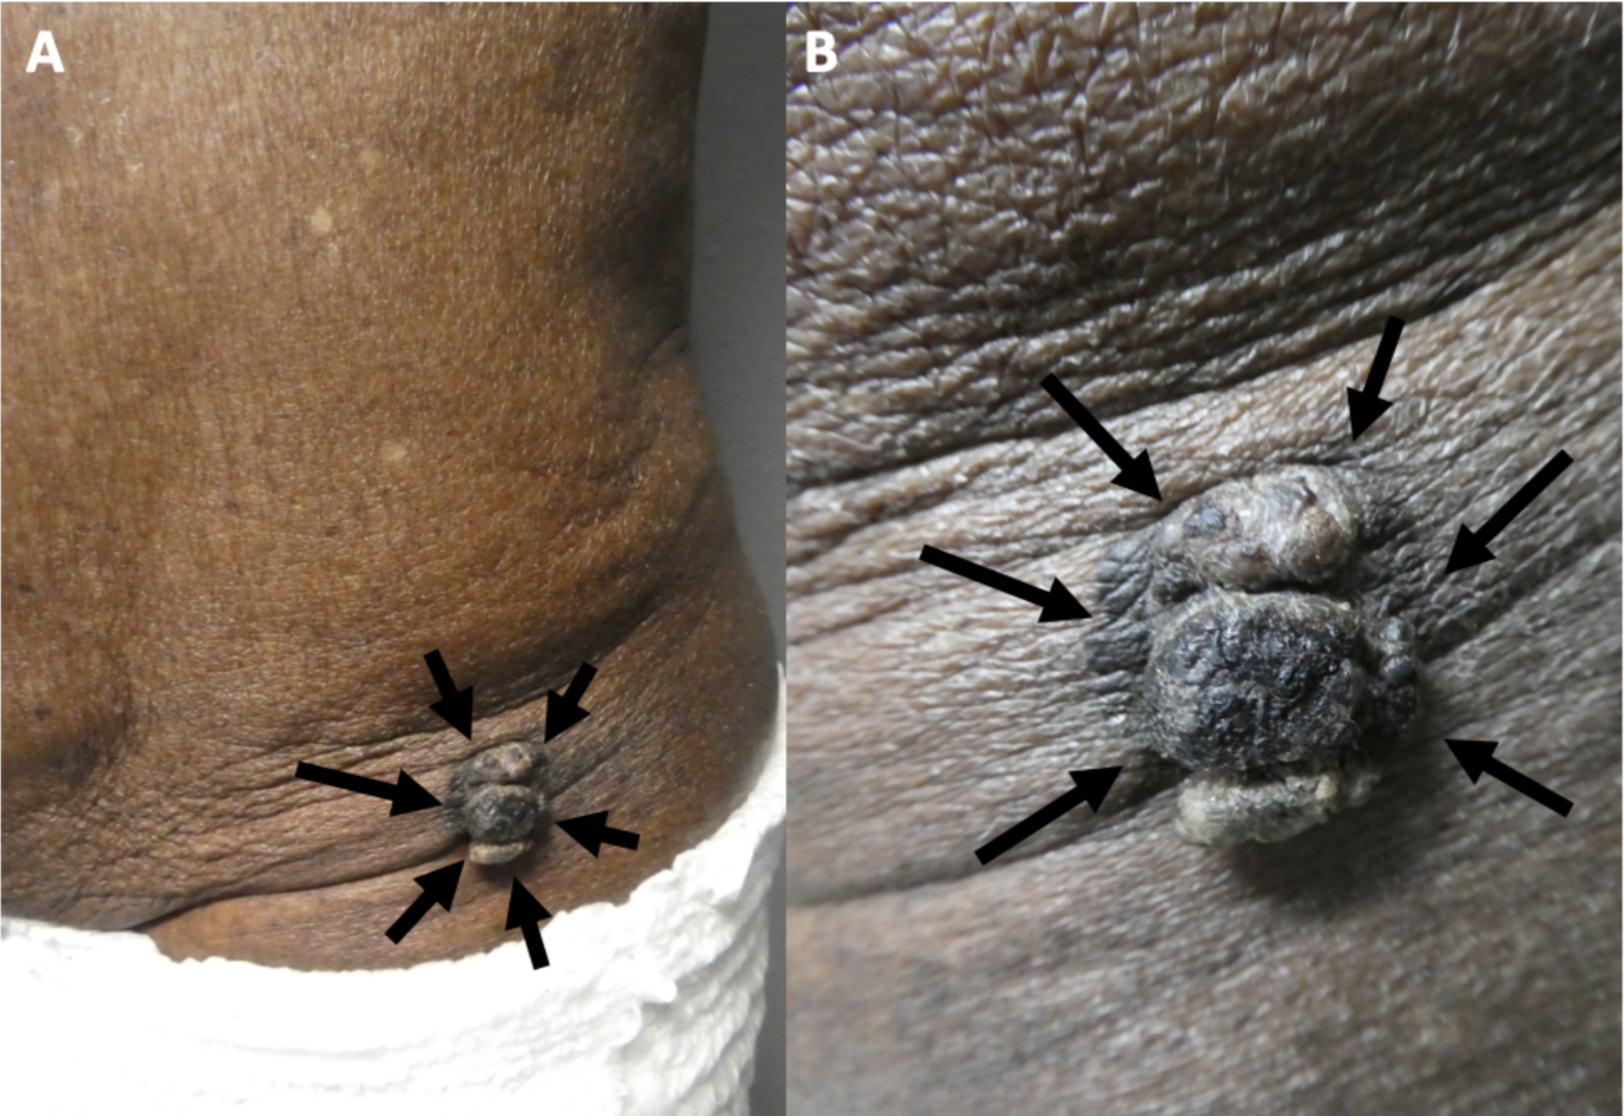 Figure 4. Melanoacanthoma on the left lower abdomen of an 85-year-old man.  Distant (A) and closer (B) views of a melanoacanthoma (black arrows) presenting as a large 3 x 2.5 cm lobulated, exophytic, black nodule with hyperpigmentation of the surrounding skin on the left lower abdomen.